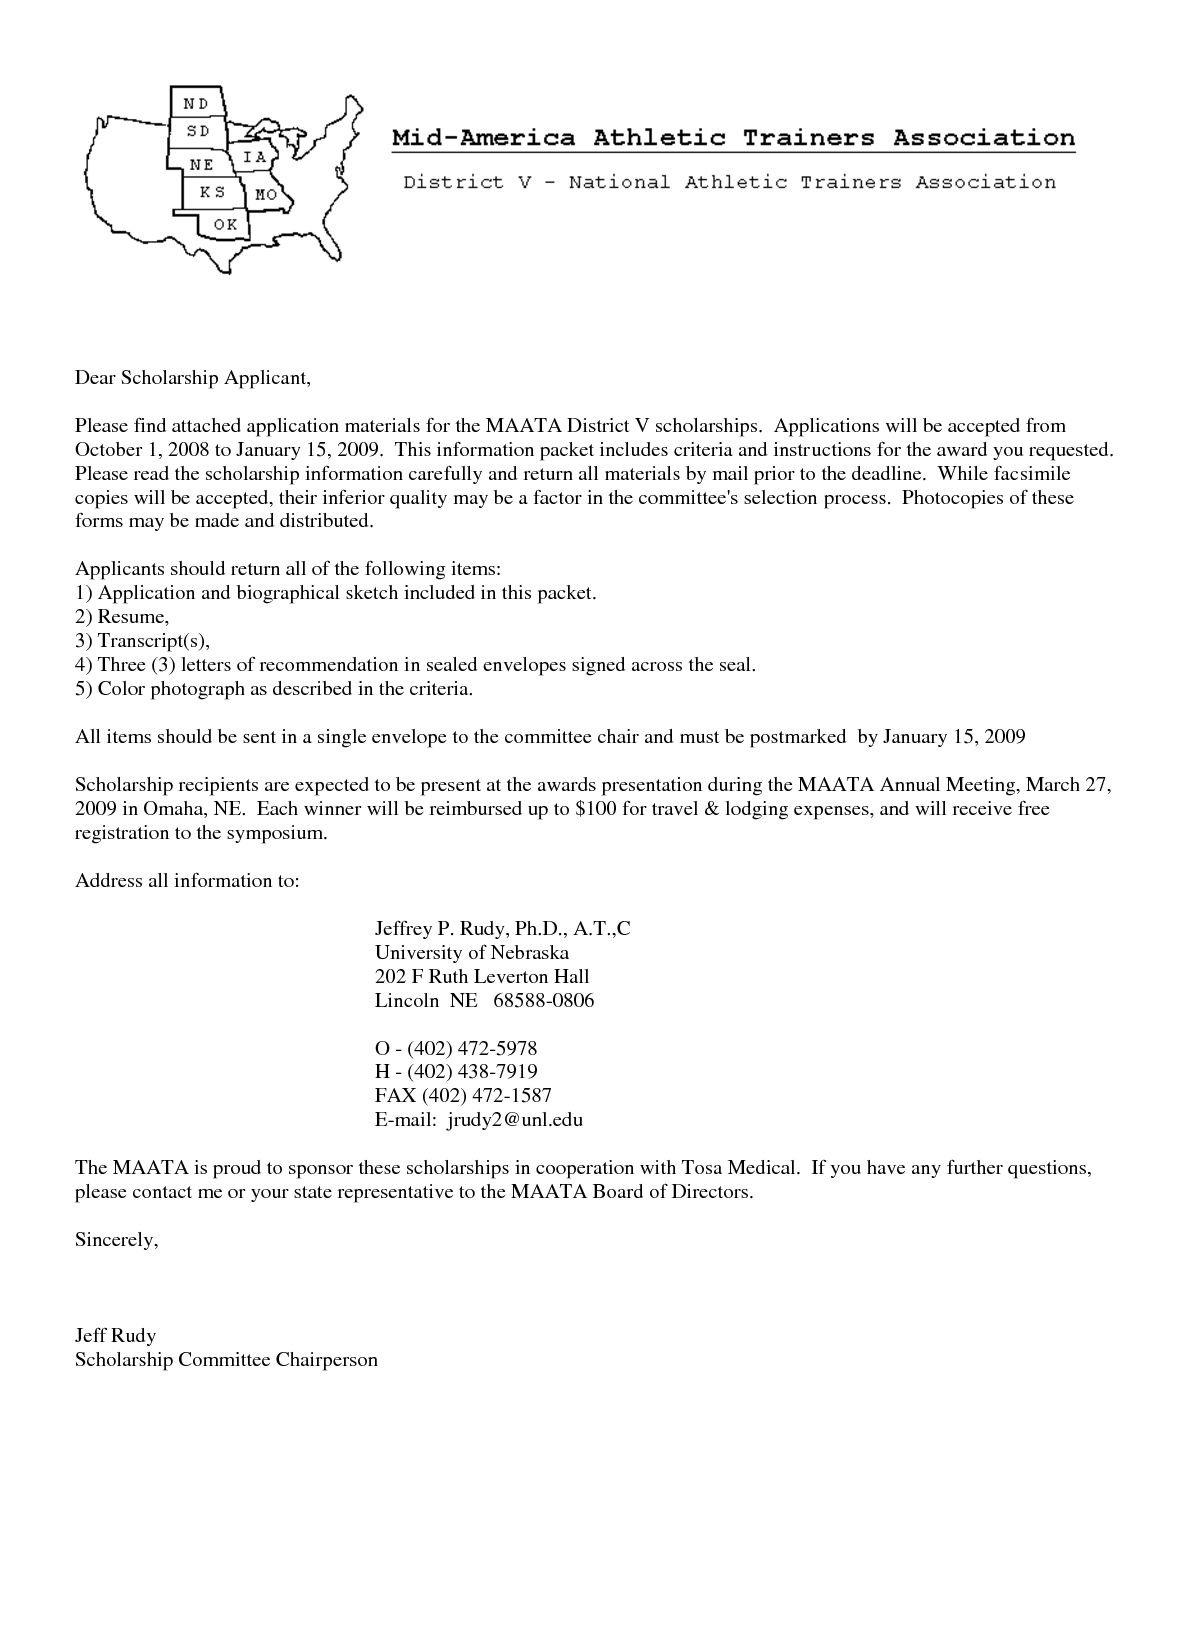 26+ cover letter for scholarship in 2020 example technical lead resume examples objective nurse manager cv student job